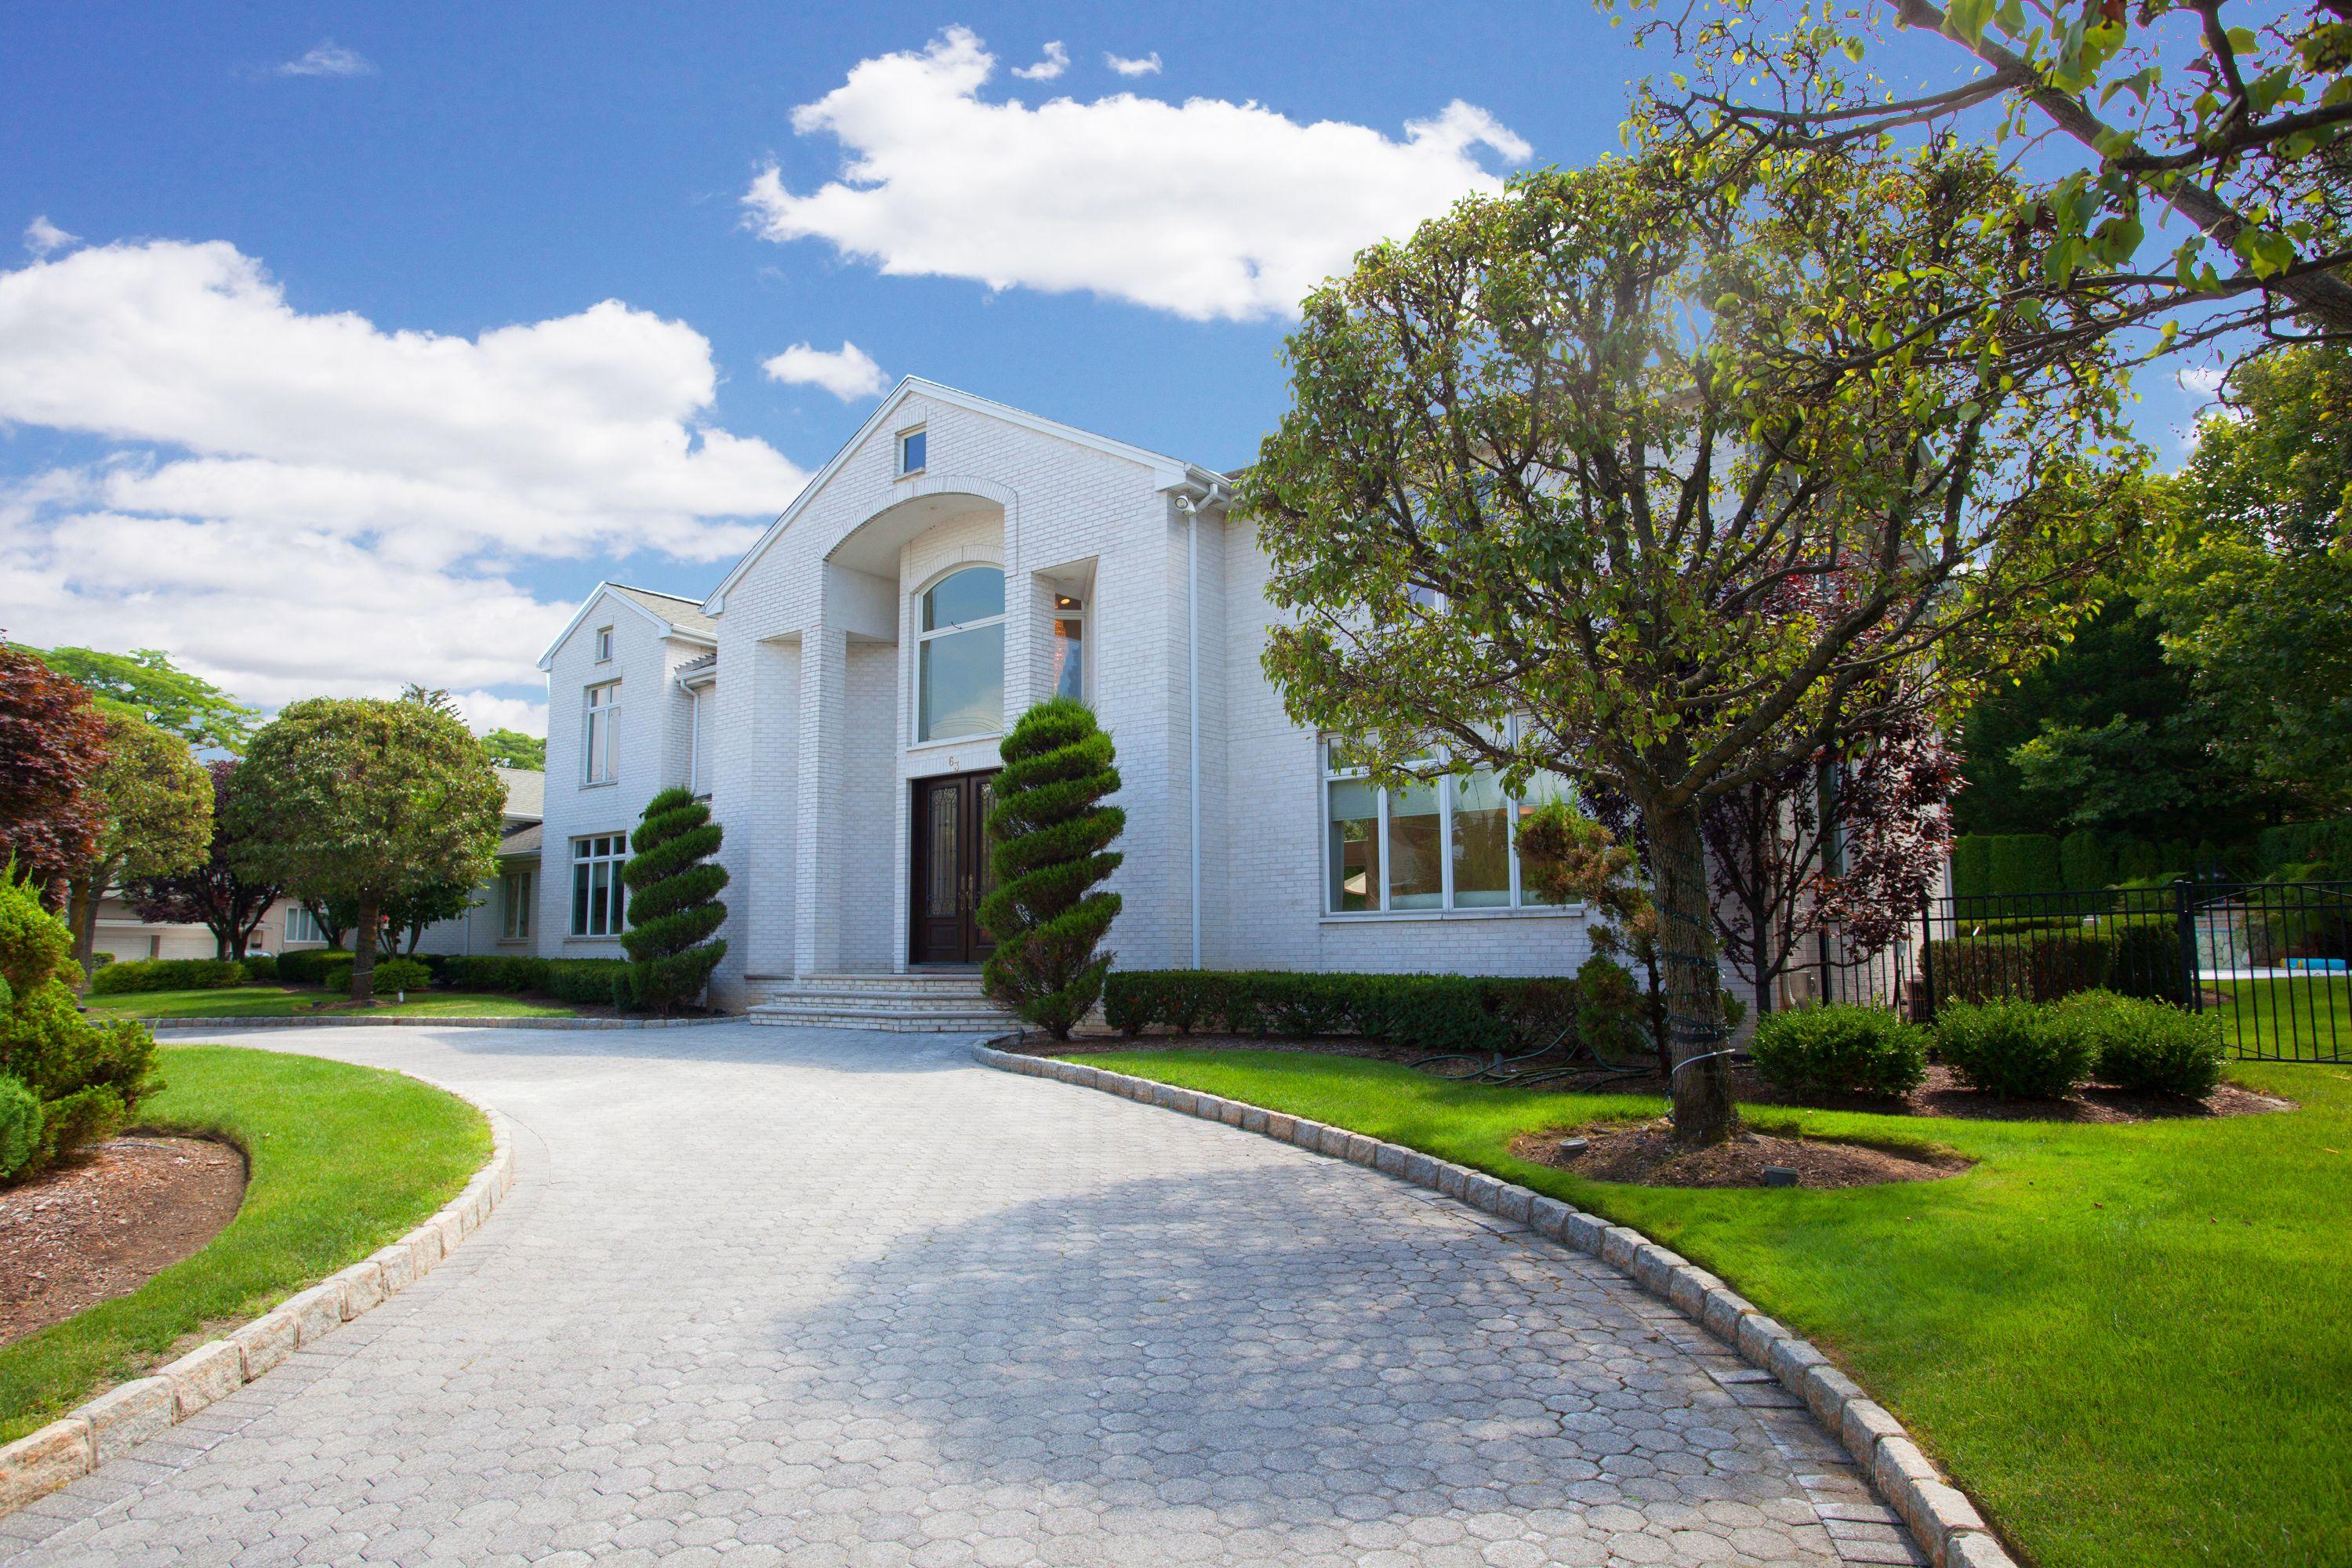 Single Family Home for Sale at Elegant & Modern Colonial 63 Roberts Dr Englewood Cliffs, New Jersey, 07632 United States